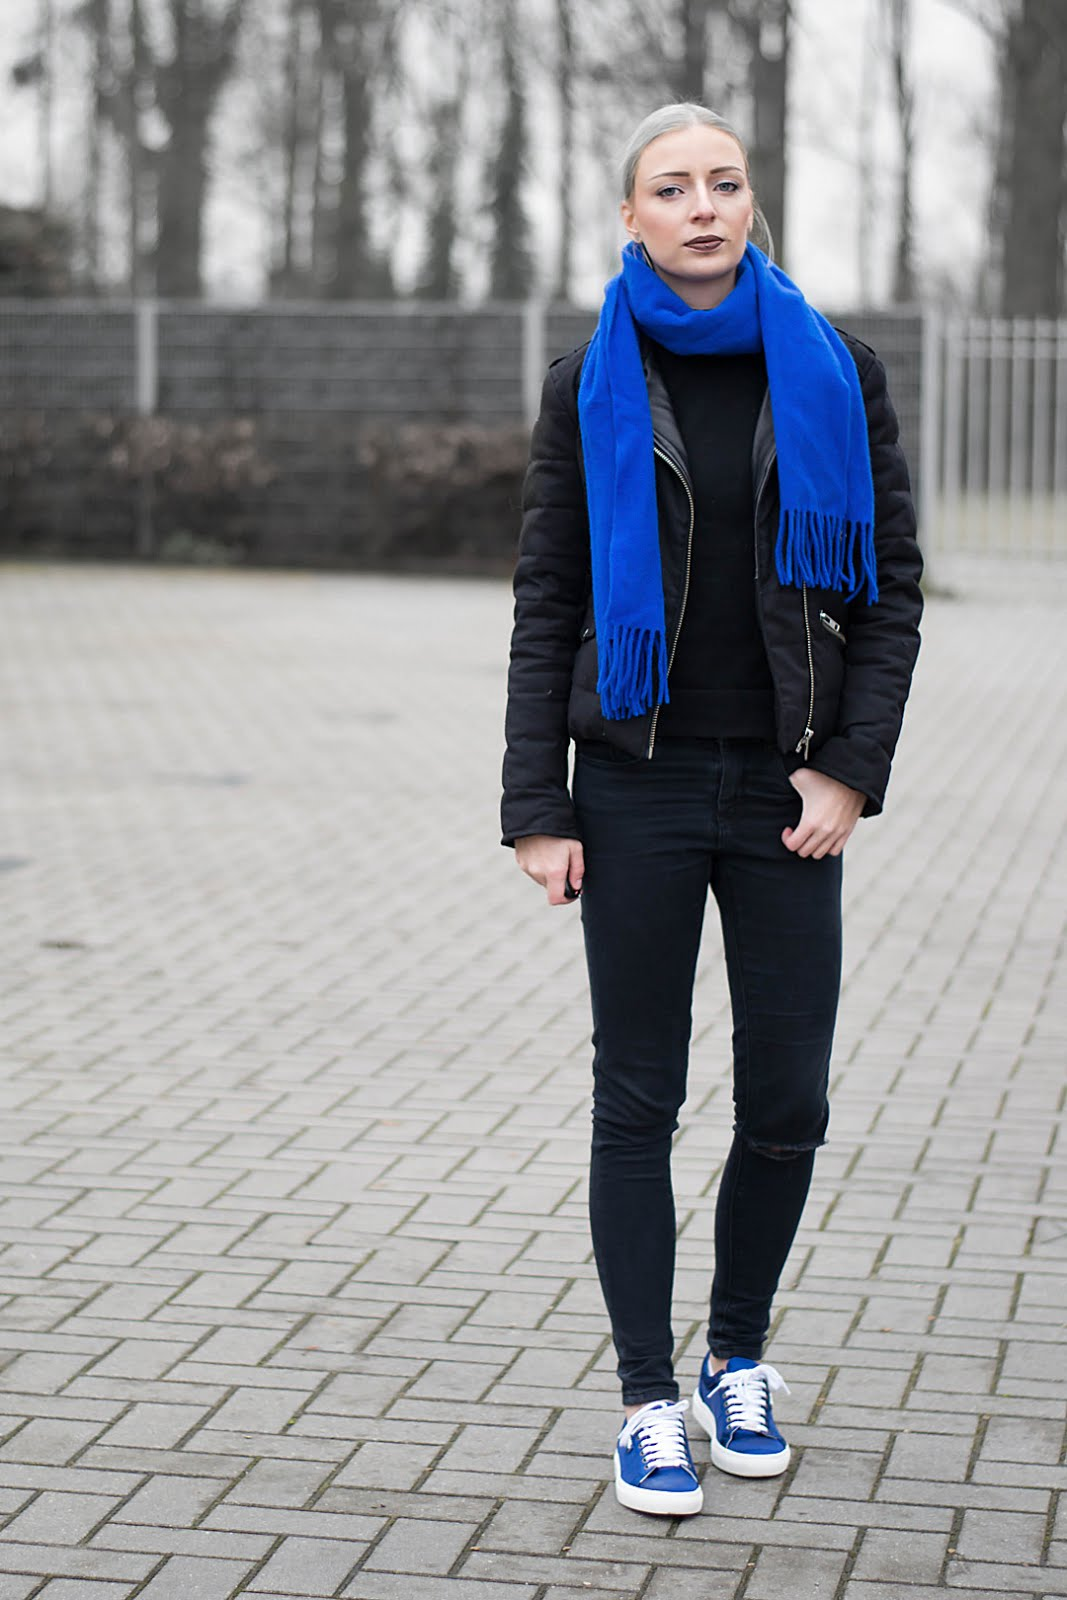 Outfitpost, cobalt blue accessoiries. Wearing karl lagerfeld sneakers and the kooples jacket